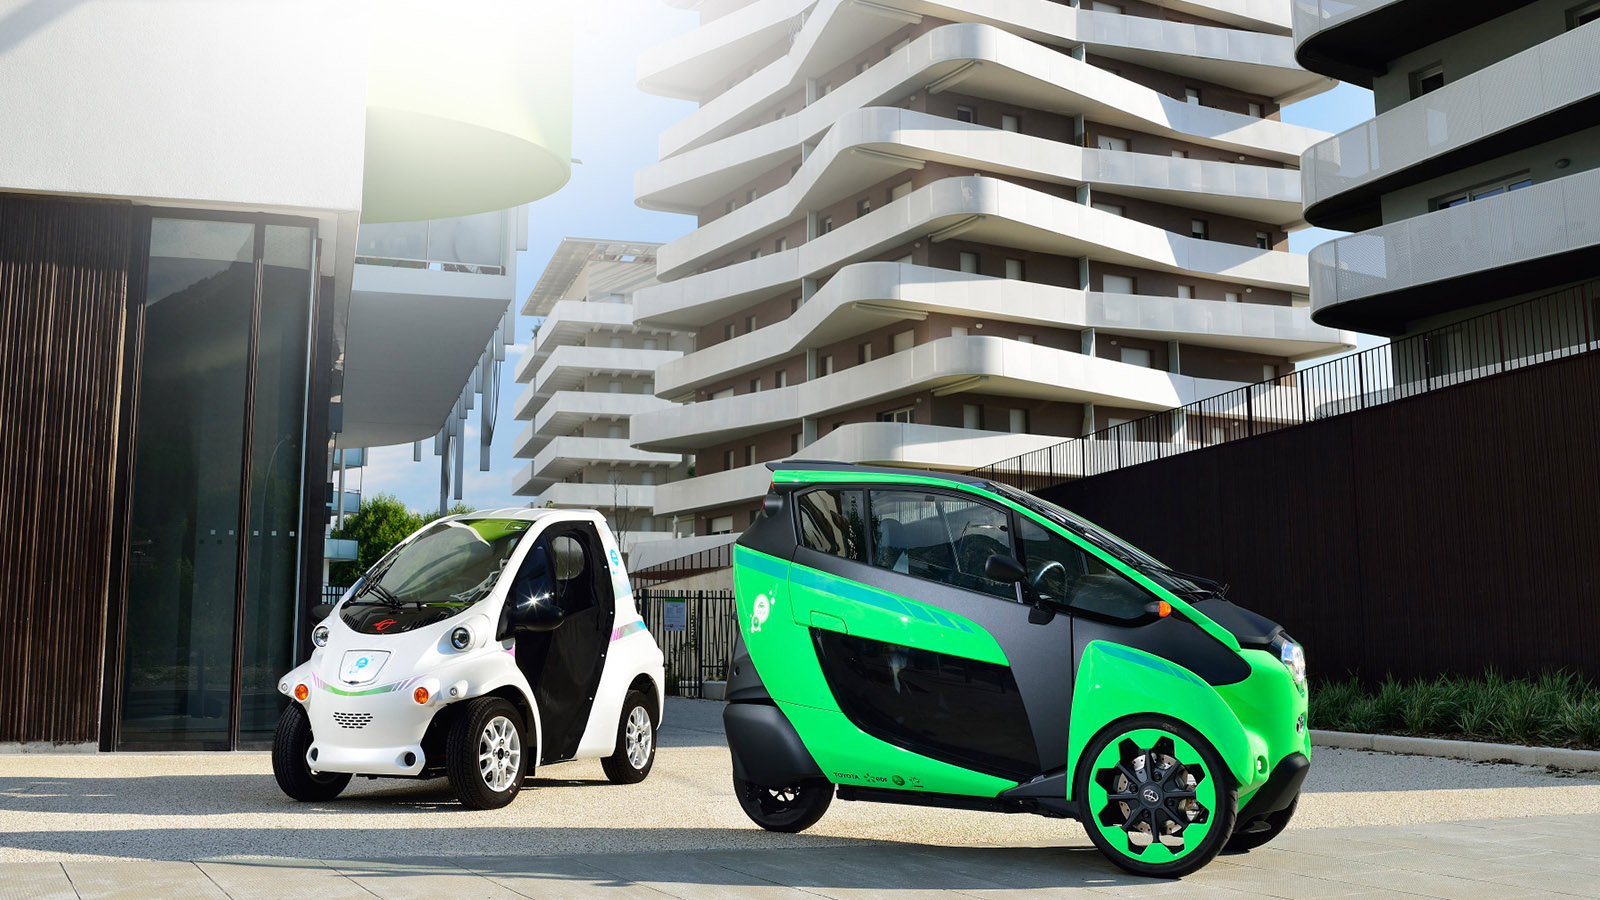 The Focus Is On Futuristic Technologies And Modern Sustainability Efforts Such As Battery Powered Electric Vehicles That Are Expected To Feature Automated Driving.